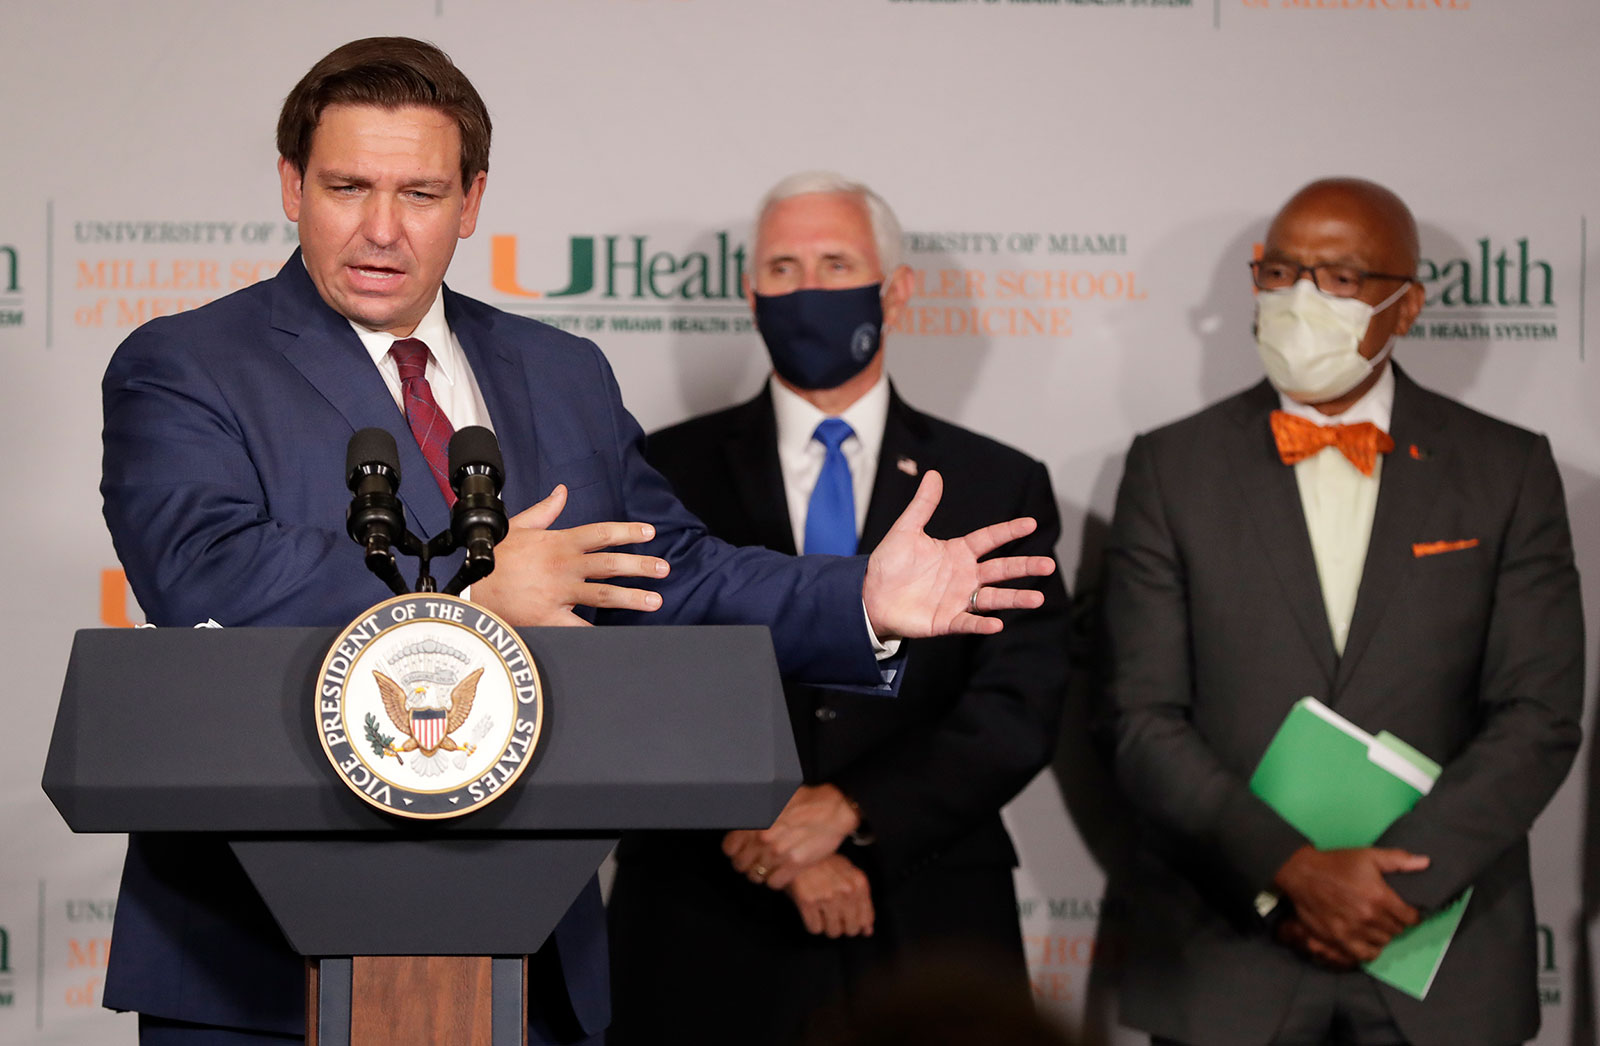 Florida Gov. Ron DeSantis speaks during a news conference at the University of Miami Miller School of Medicine on Monday, July 27.